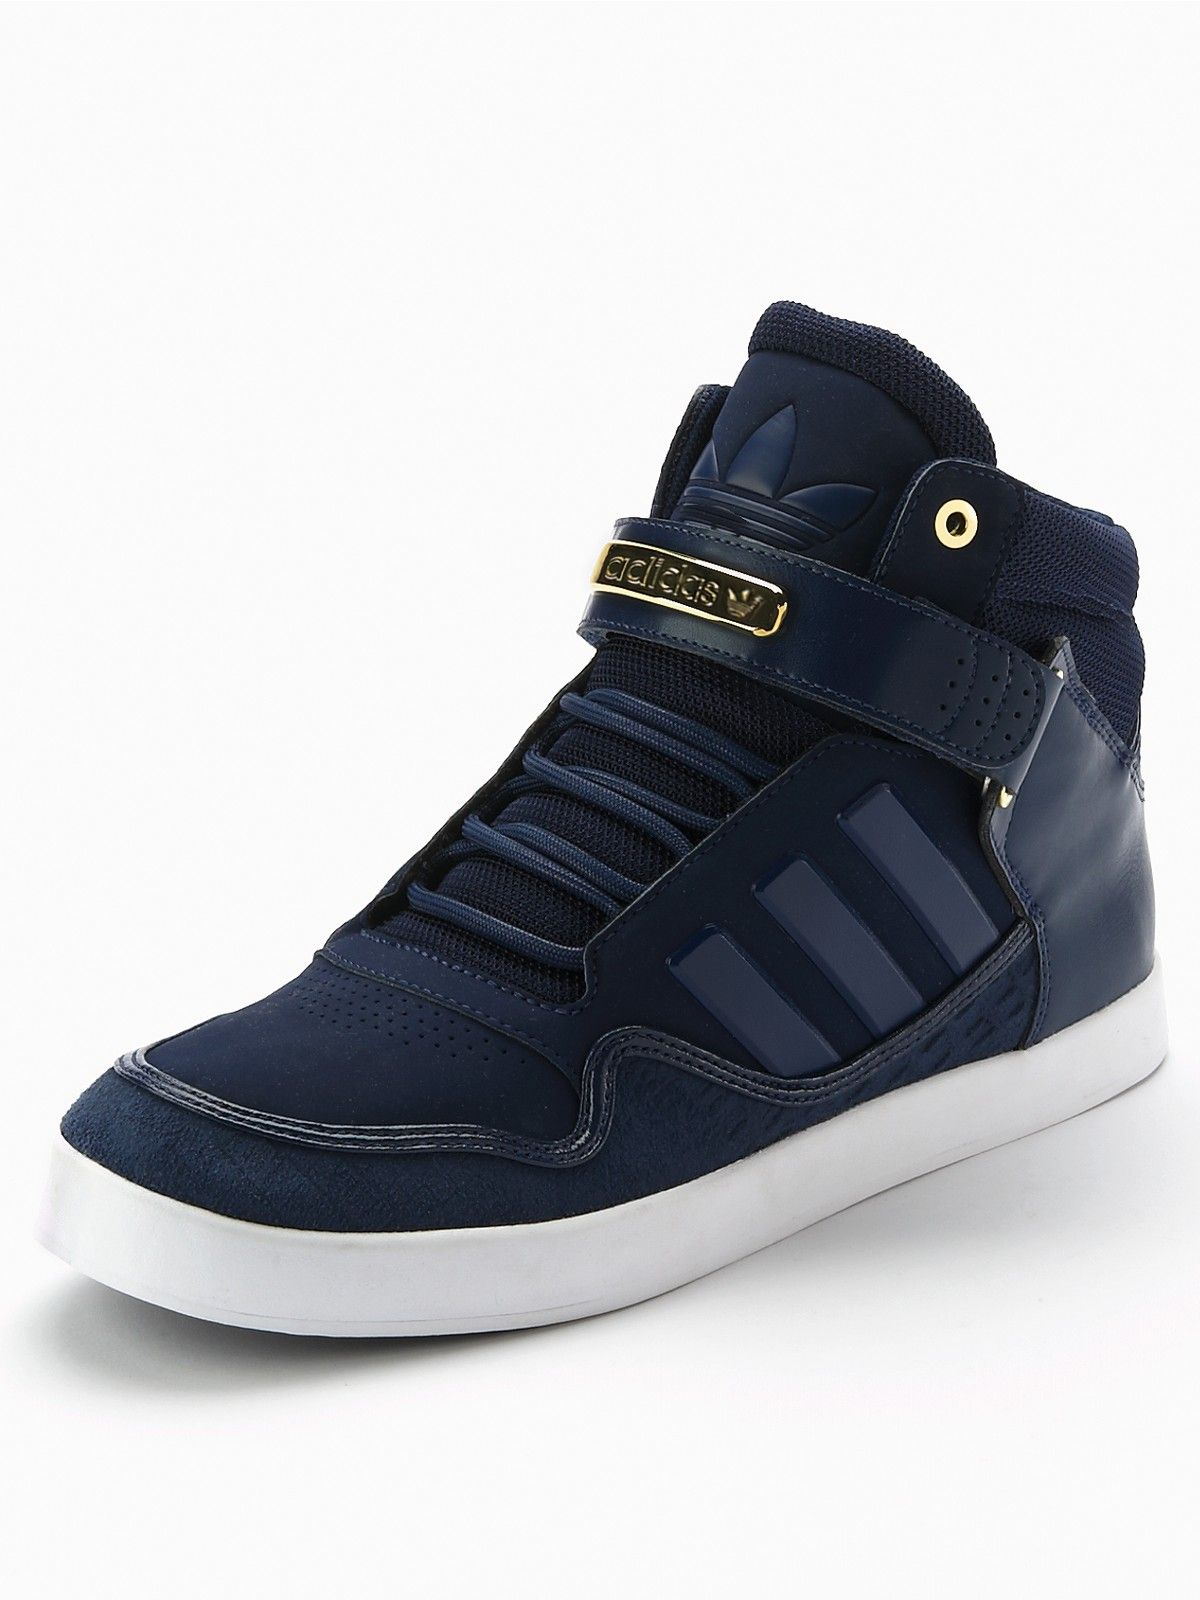 37b9de4d3 Adidas Originals AdiRise 2.0 Hi Top